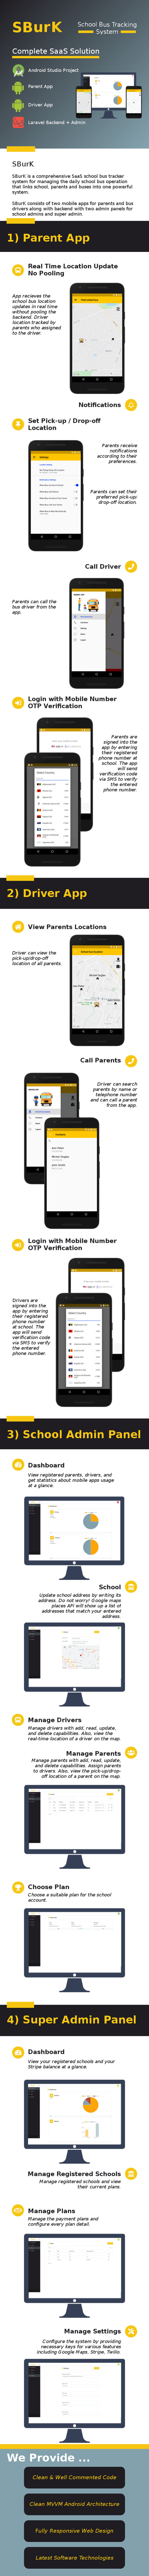 SBurK - School Bus Tracker - Two Android Appsfree download SBurK - School Bus Tracker - Two Android Appsnulled SBurK - School Bus Tracker - Two Android Appsreview SBurK - School Bus Tracker - Two Android AppsSBurK - School Bus Tracker - Two Android Apps + Backend + Admin panels - SaaS